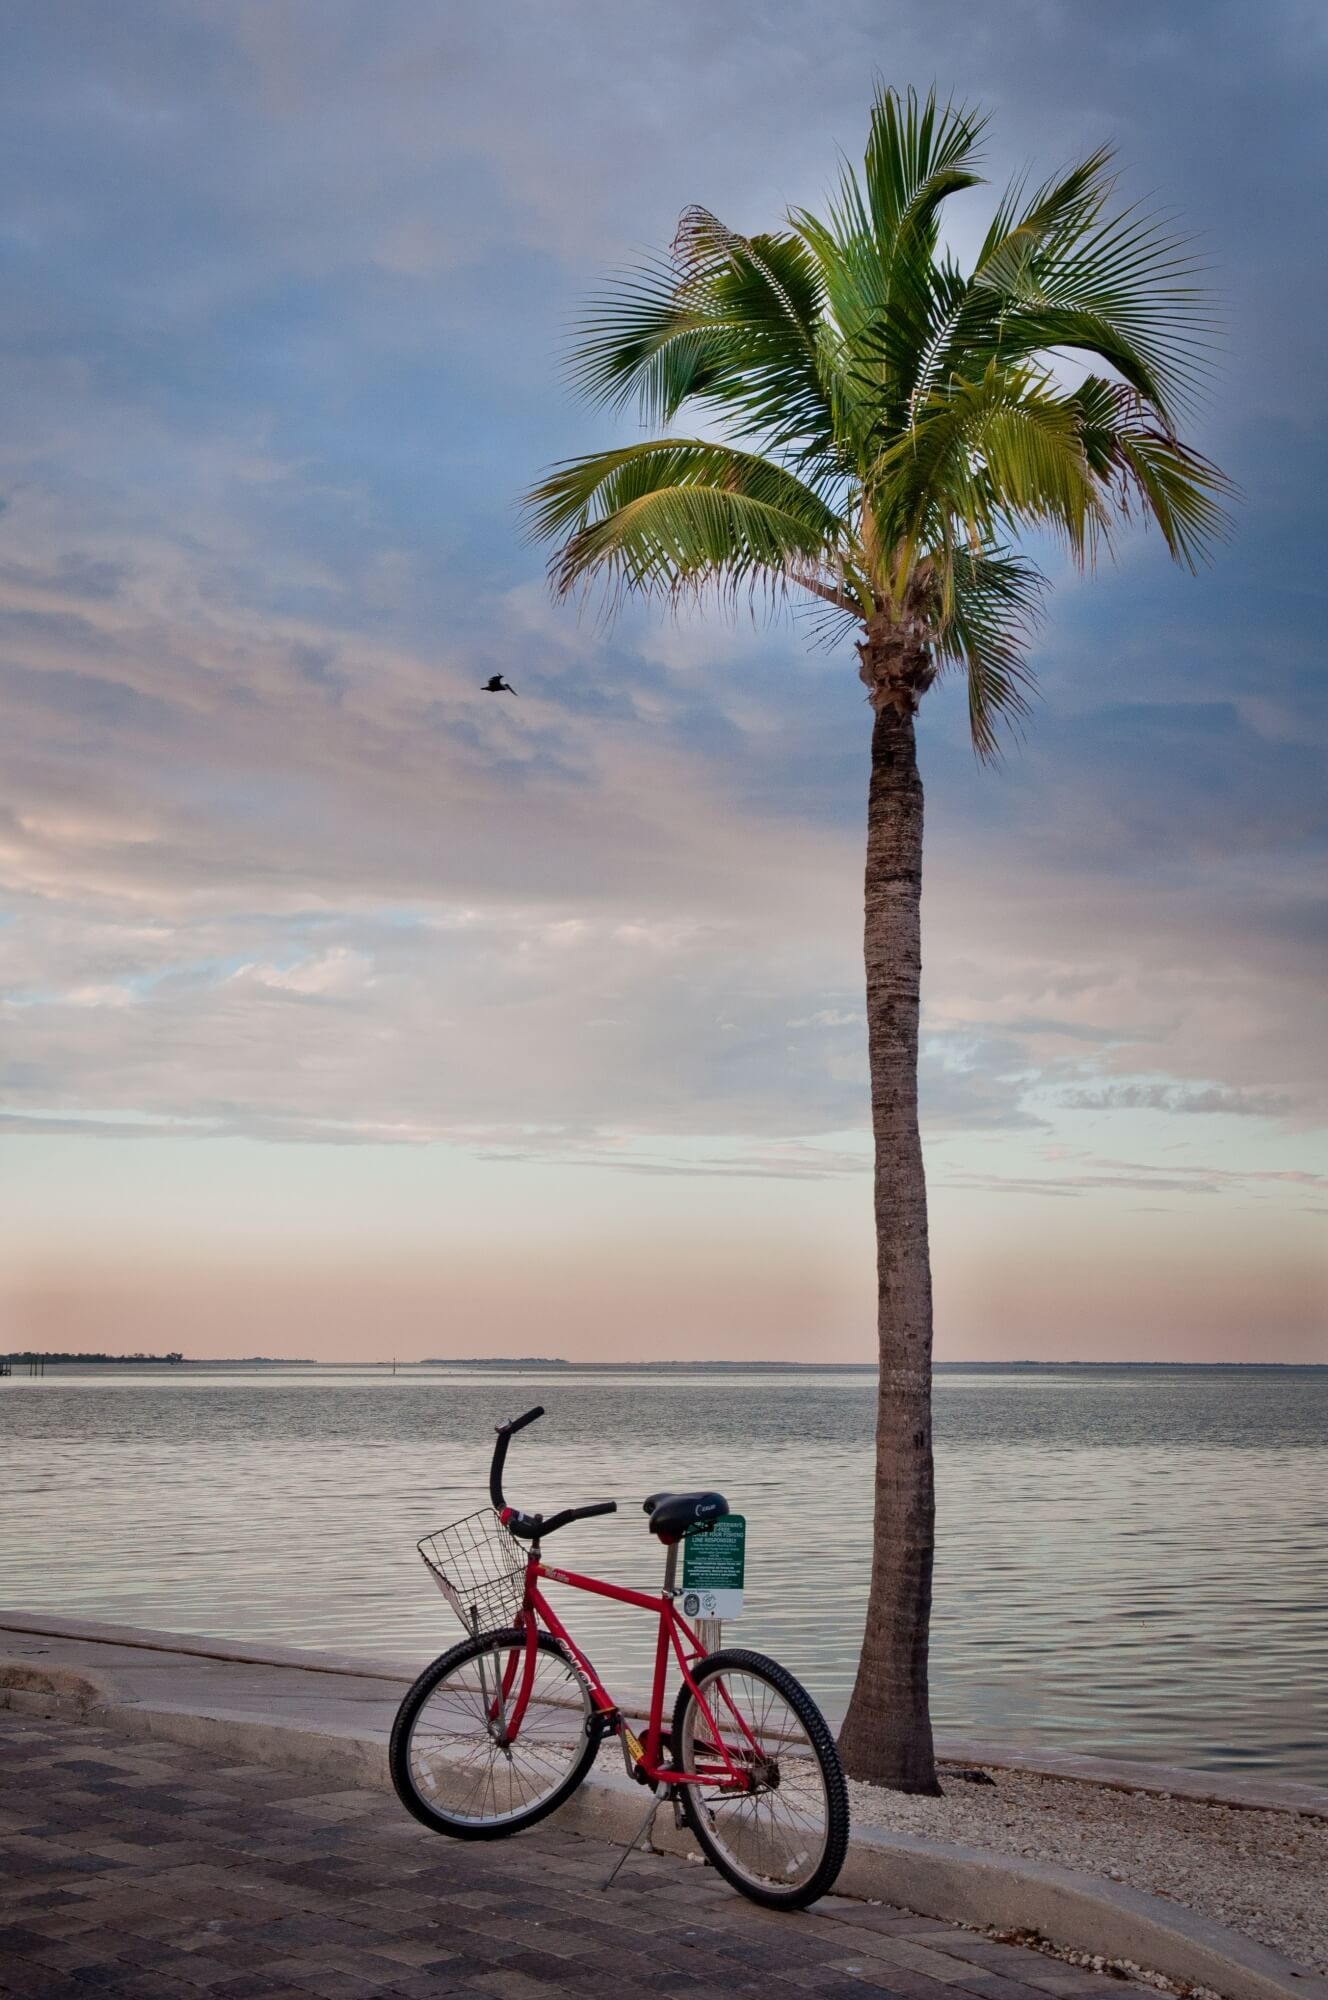 MustDo.com | Biking along Periwinkle Way on Sanibel Island, Florida. Photo by Debi Pittman WilkeyBicycle and palm tree at sunset, South Seas Island Resort, Captiva Island, Florida. Photo by Debi Pittman Wilkey